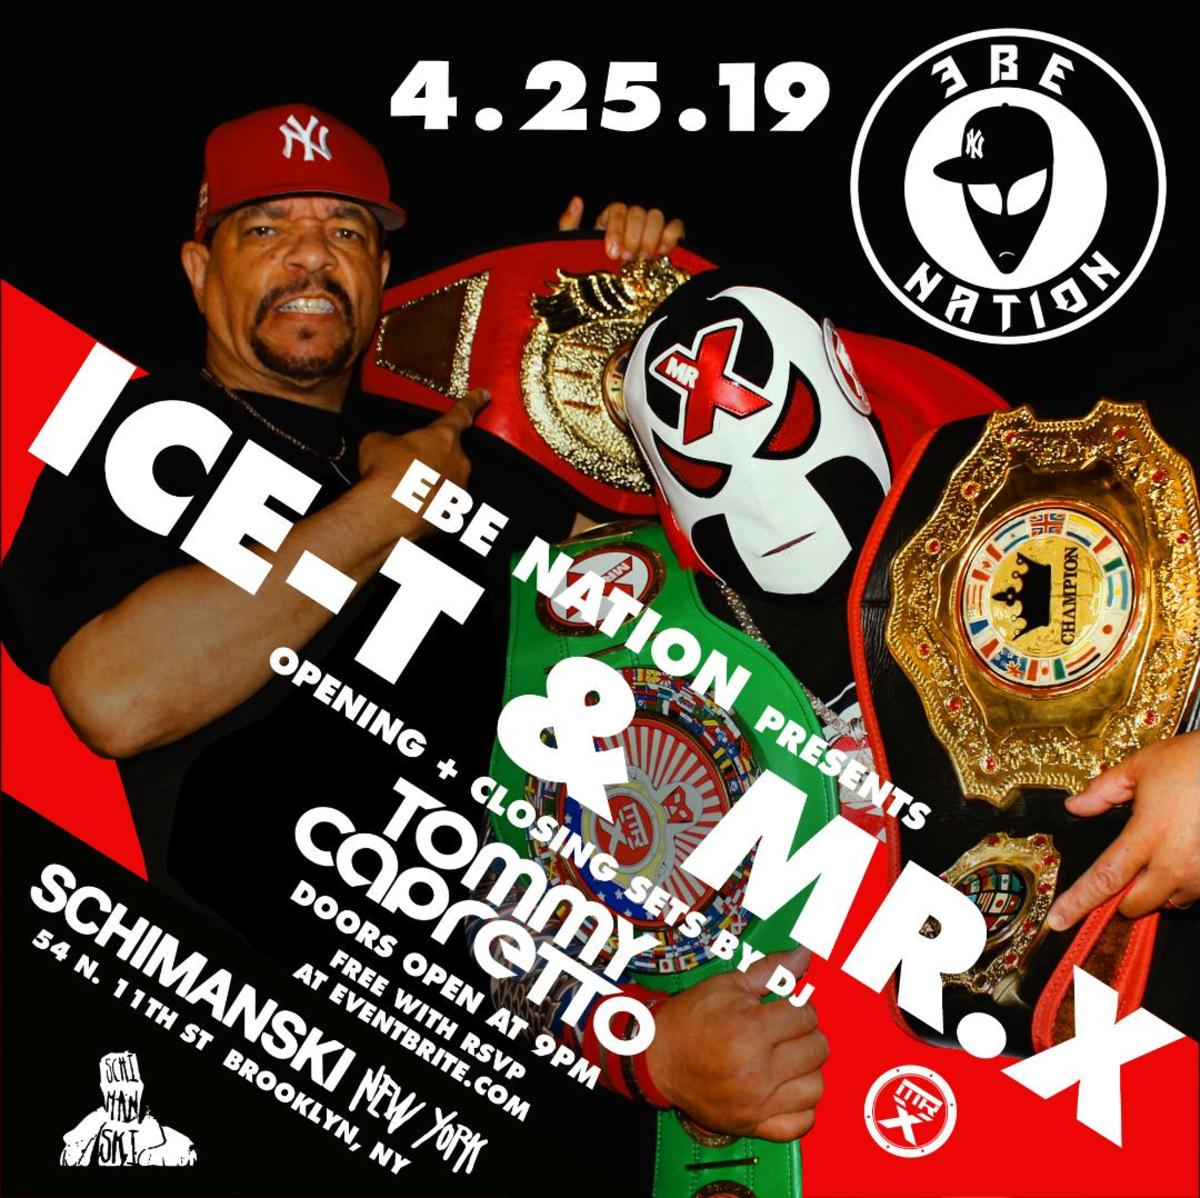 EBE Nation Presents: ICE-T & MR. X at Shimanski in Brooklyn, NY (Label Party)